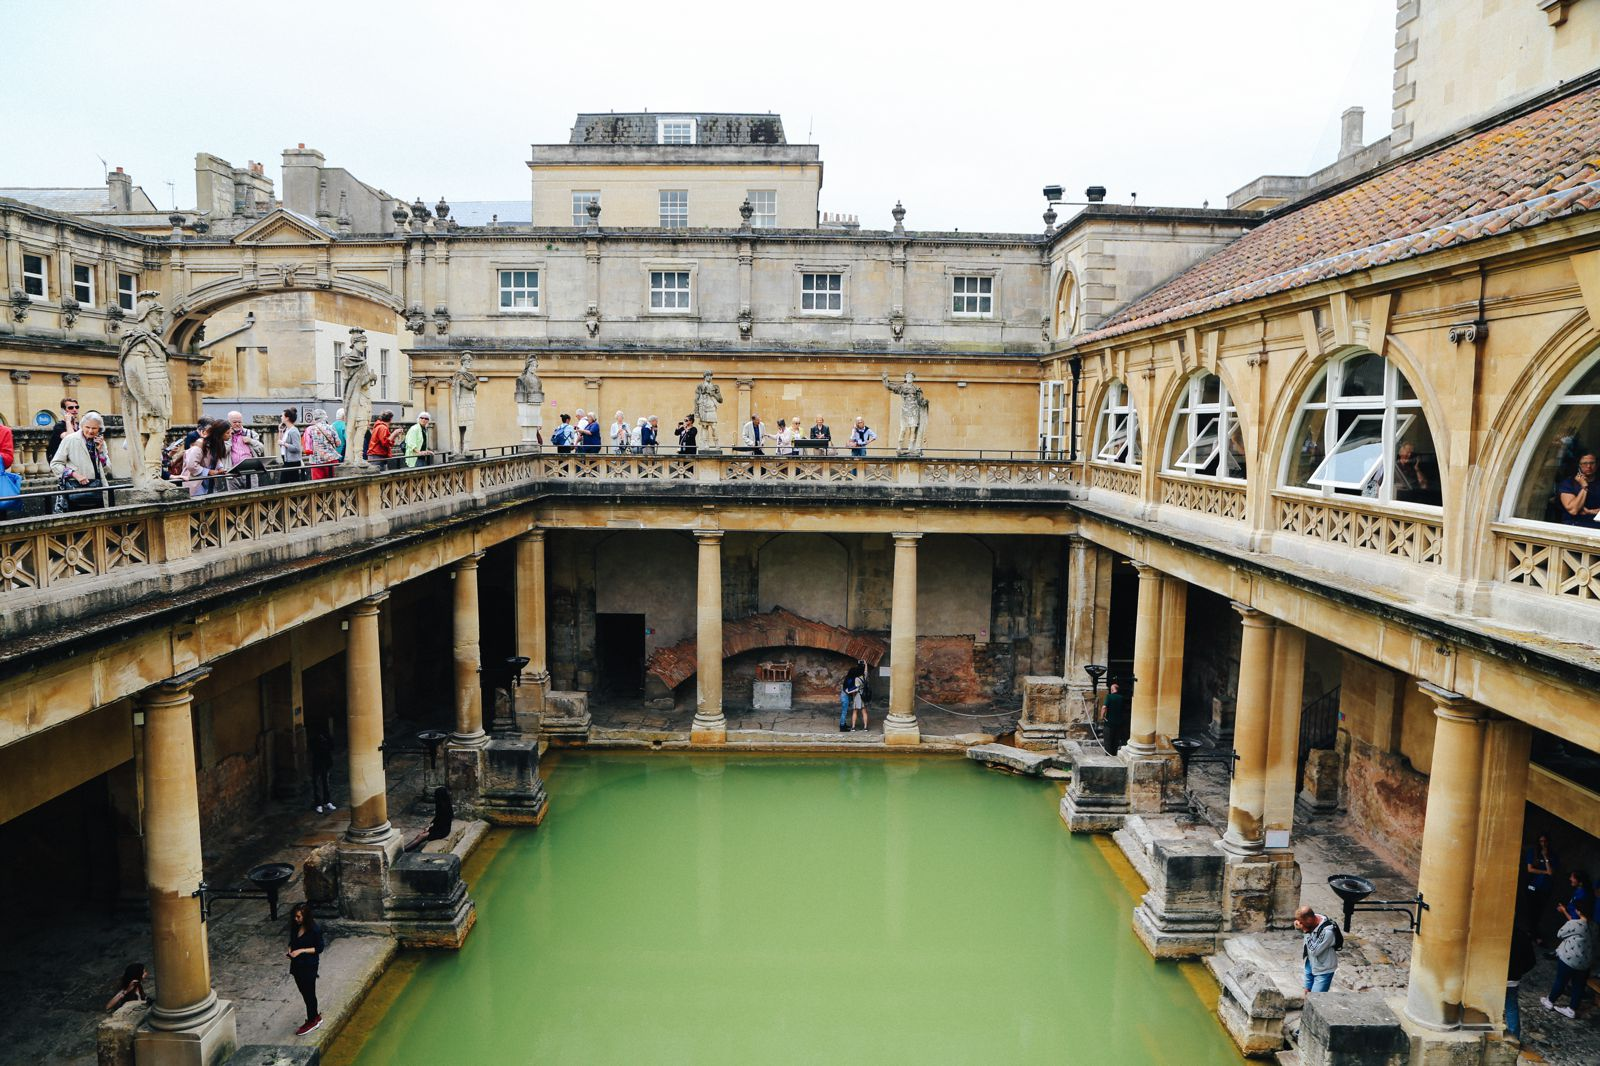 Superieur 24 Hours In Bath, England (36)